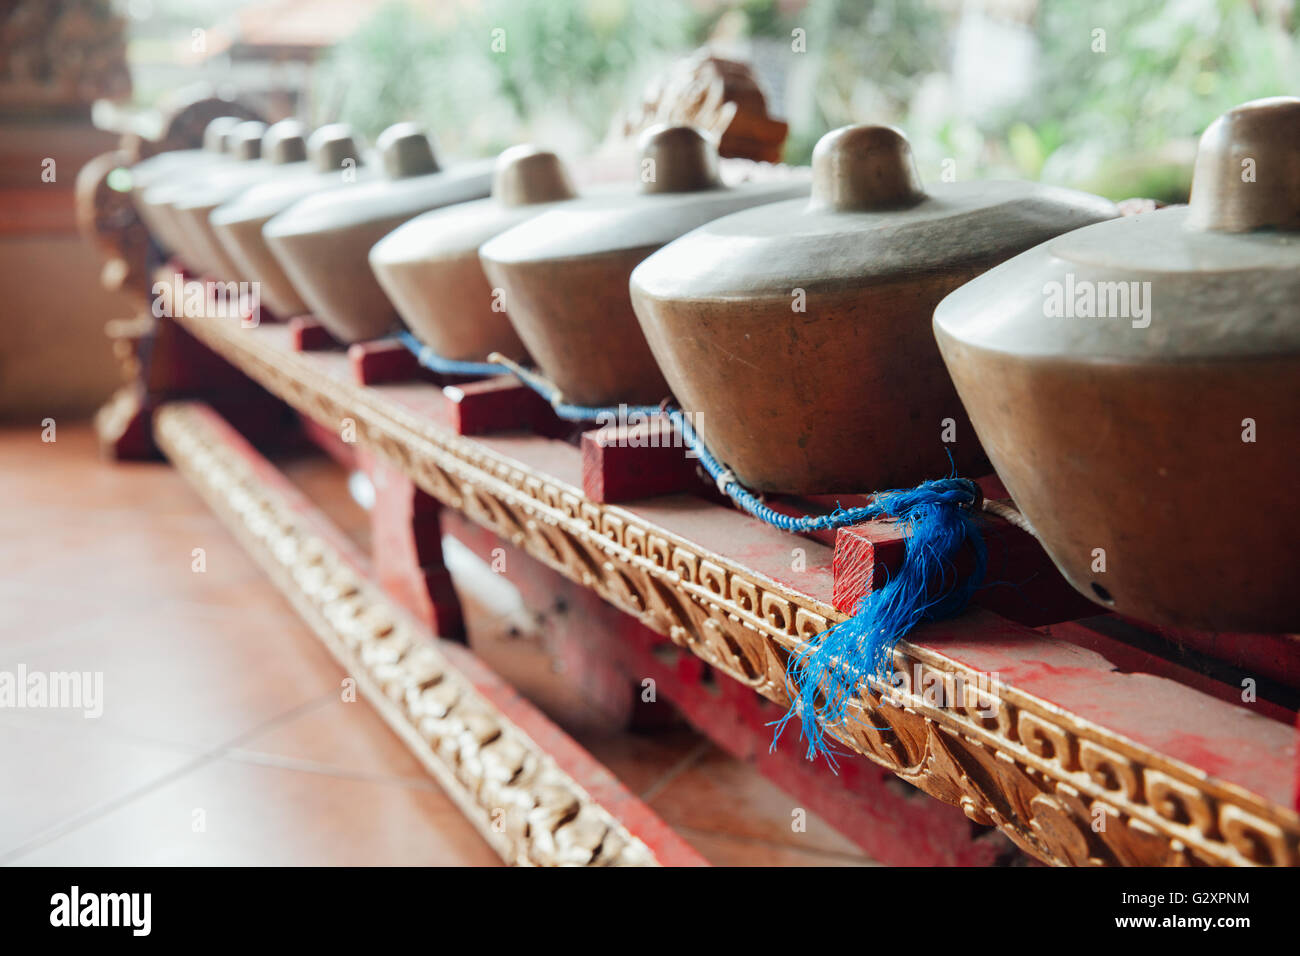 Traditional balinese percussive music instruments instruments for 'Gamelan' ensemble music, Ubud, Bali, - Stock Image